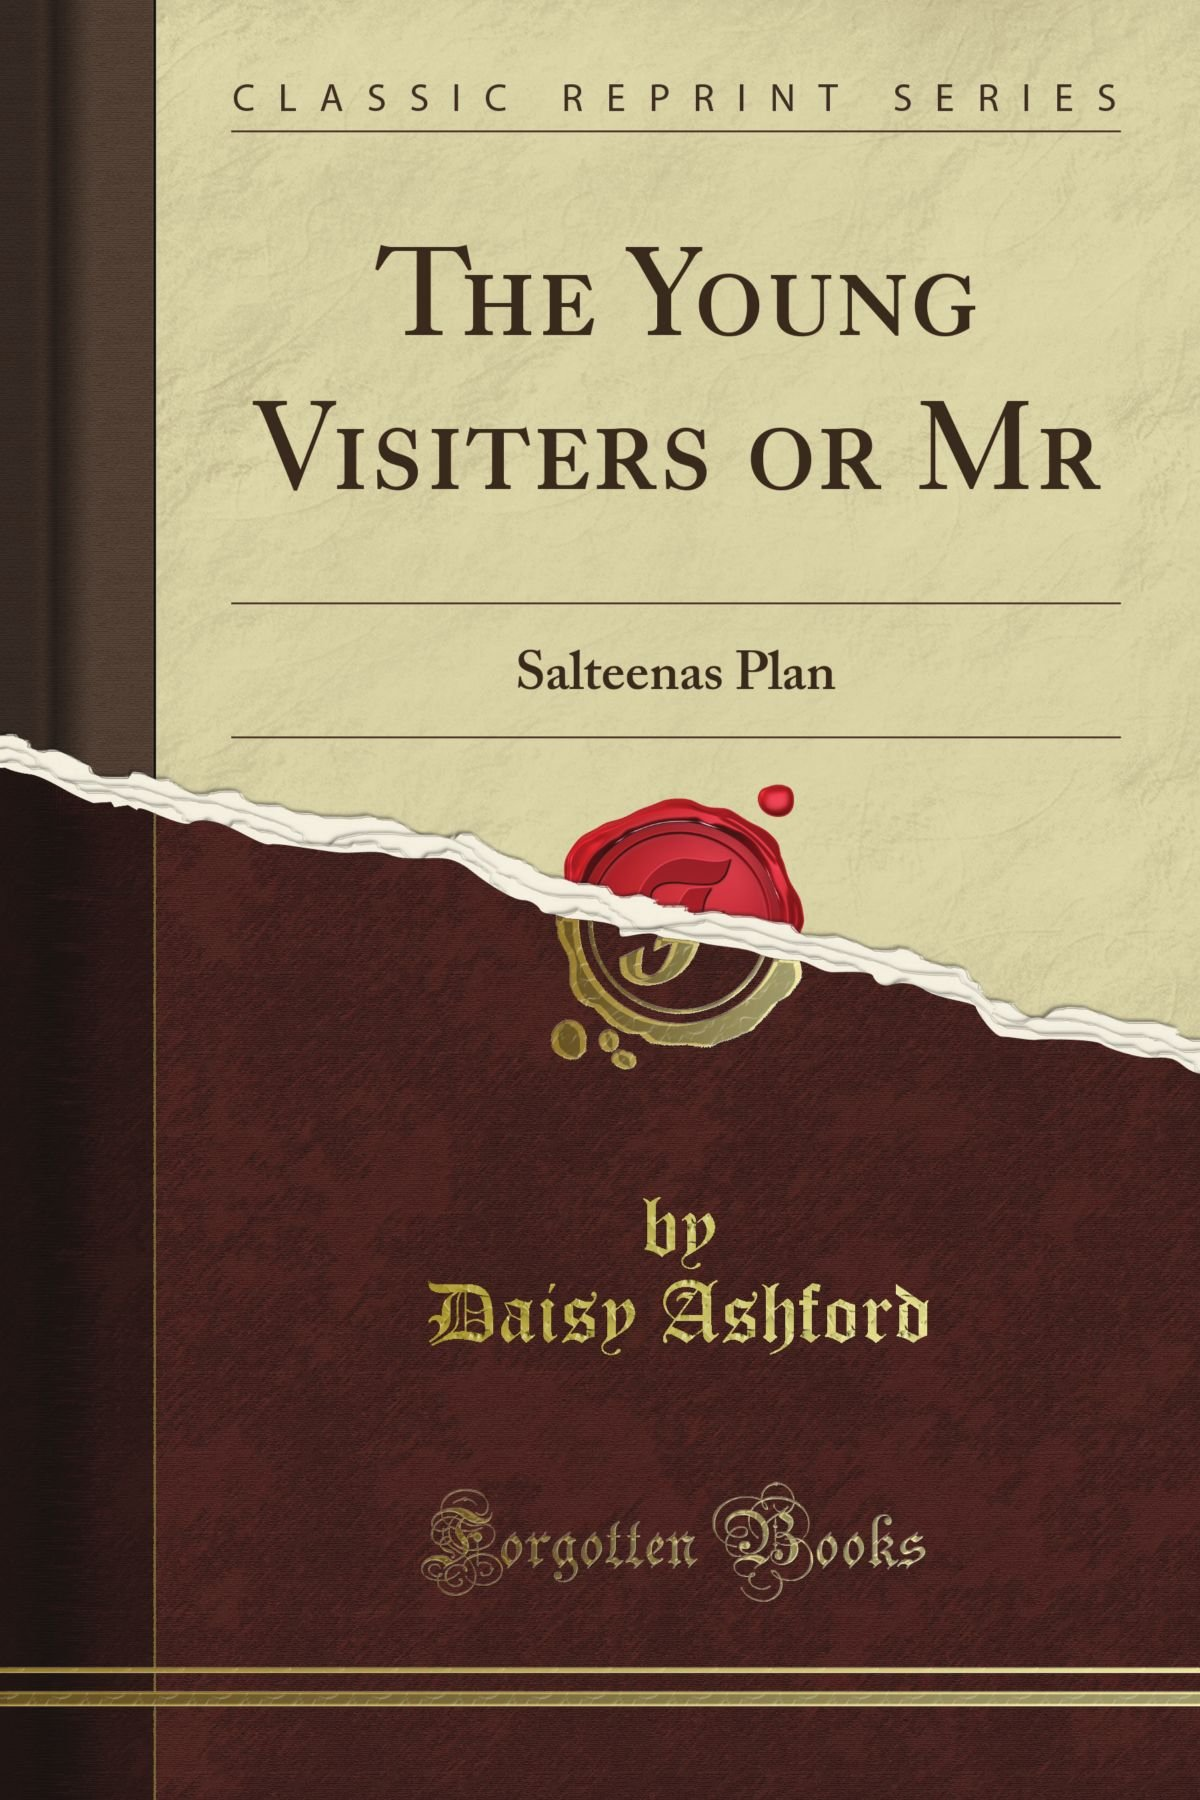 The Young Visiters or Mr: Salteena's Plan (Classic Reprint) PDF